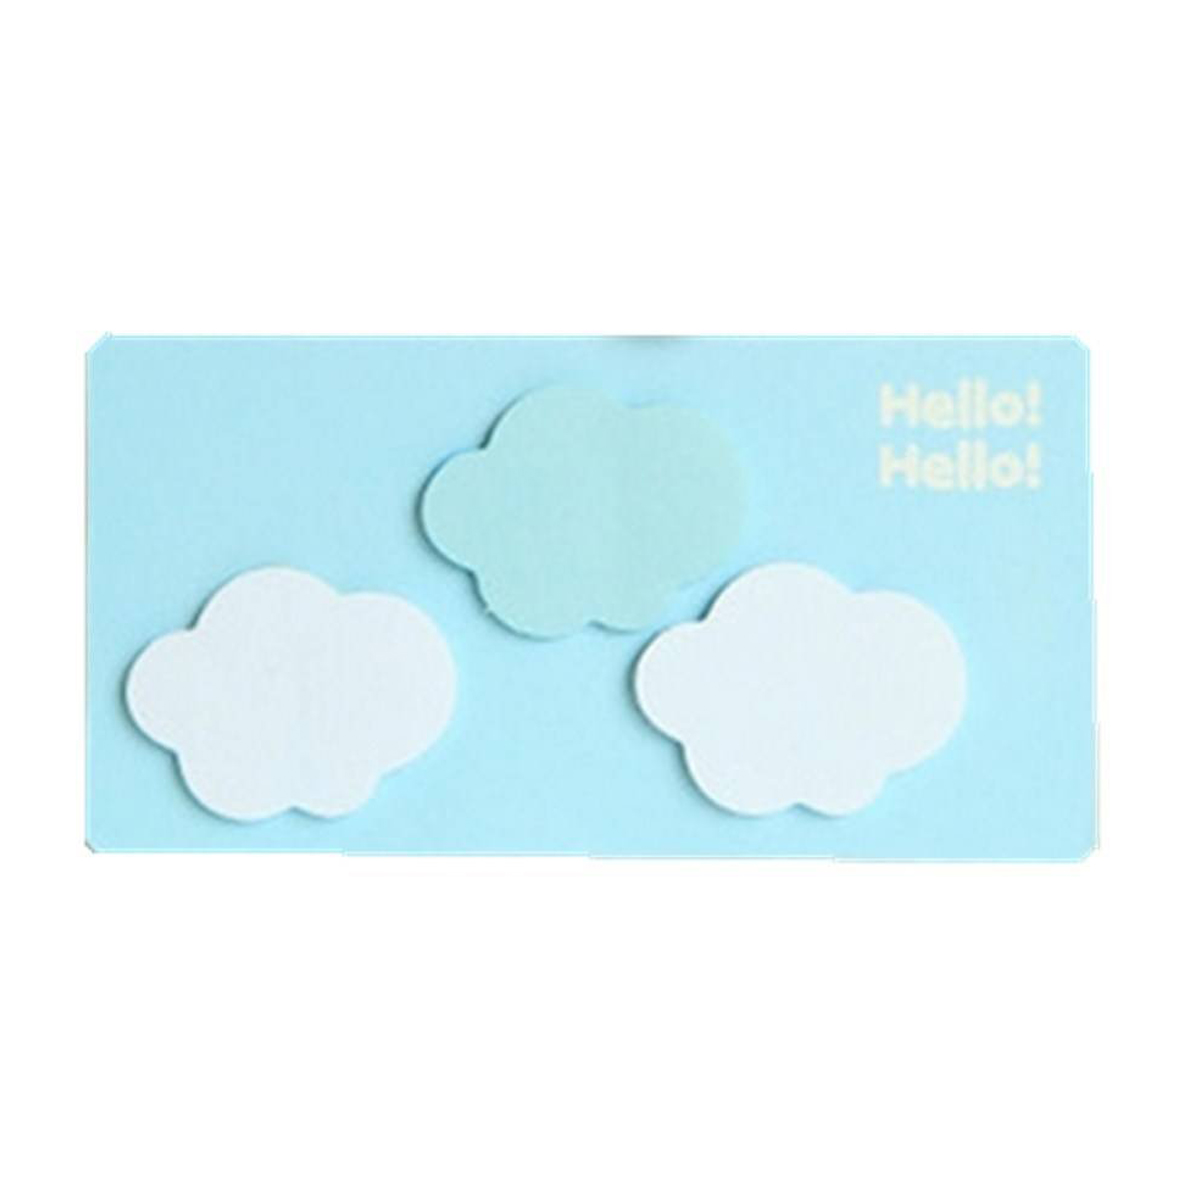 SAF Wholesale Sticky Notes Memo Note Lovely Forest Story Clouds Shape<br><br>Aliexpress